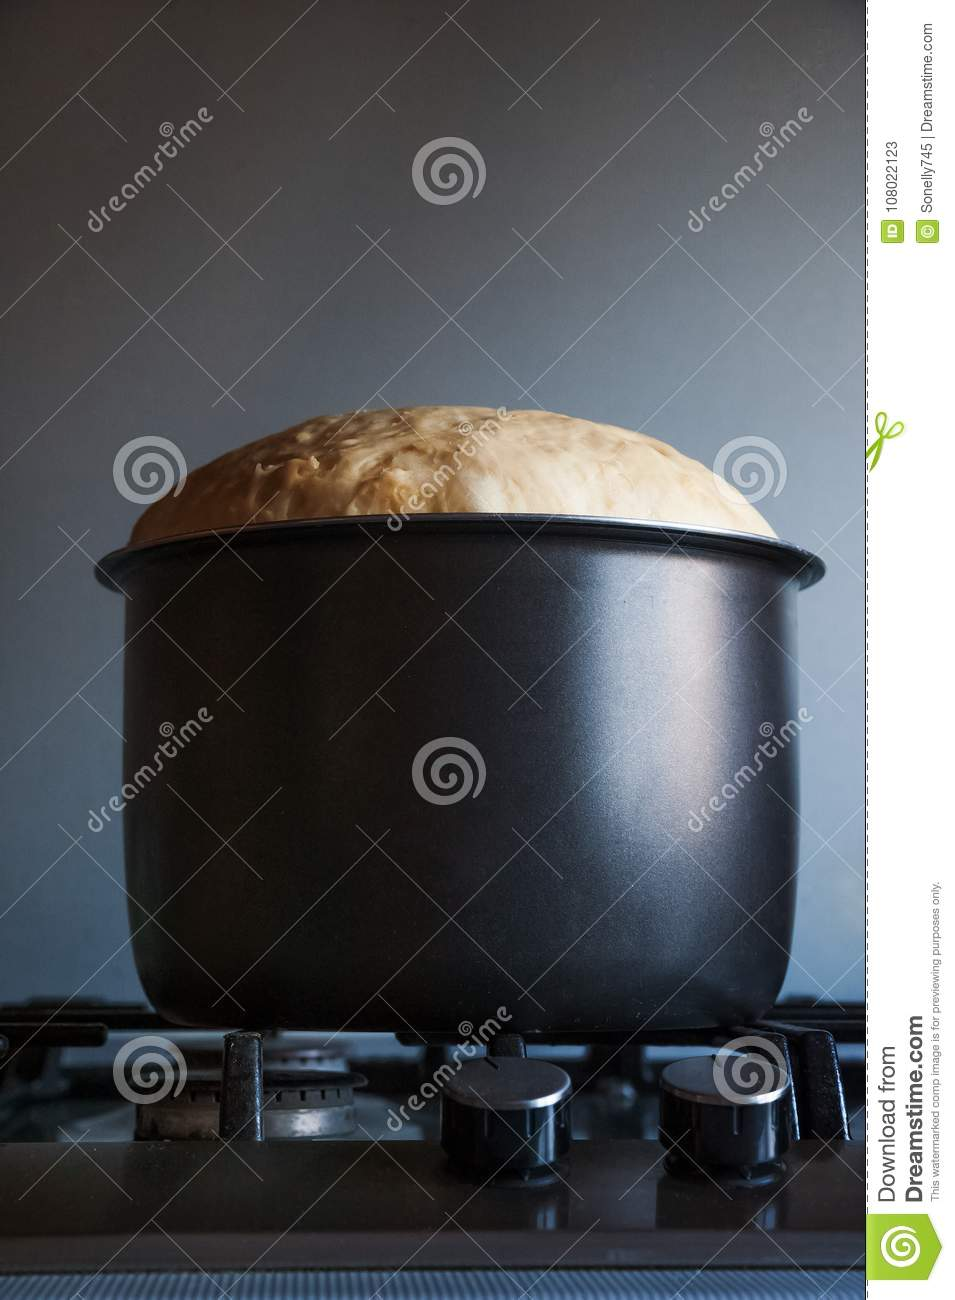 The batter dough in a black saucepan rises by leaps and bounds.